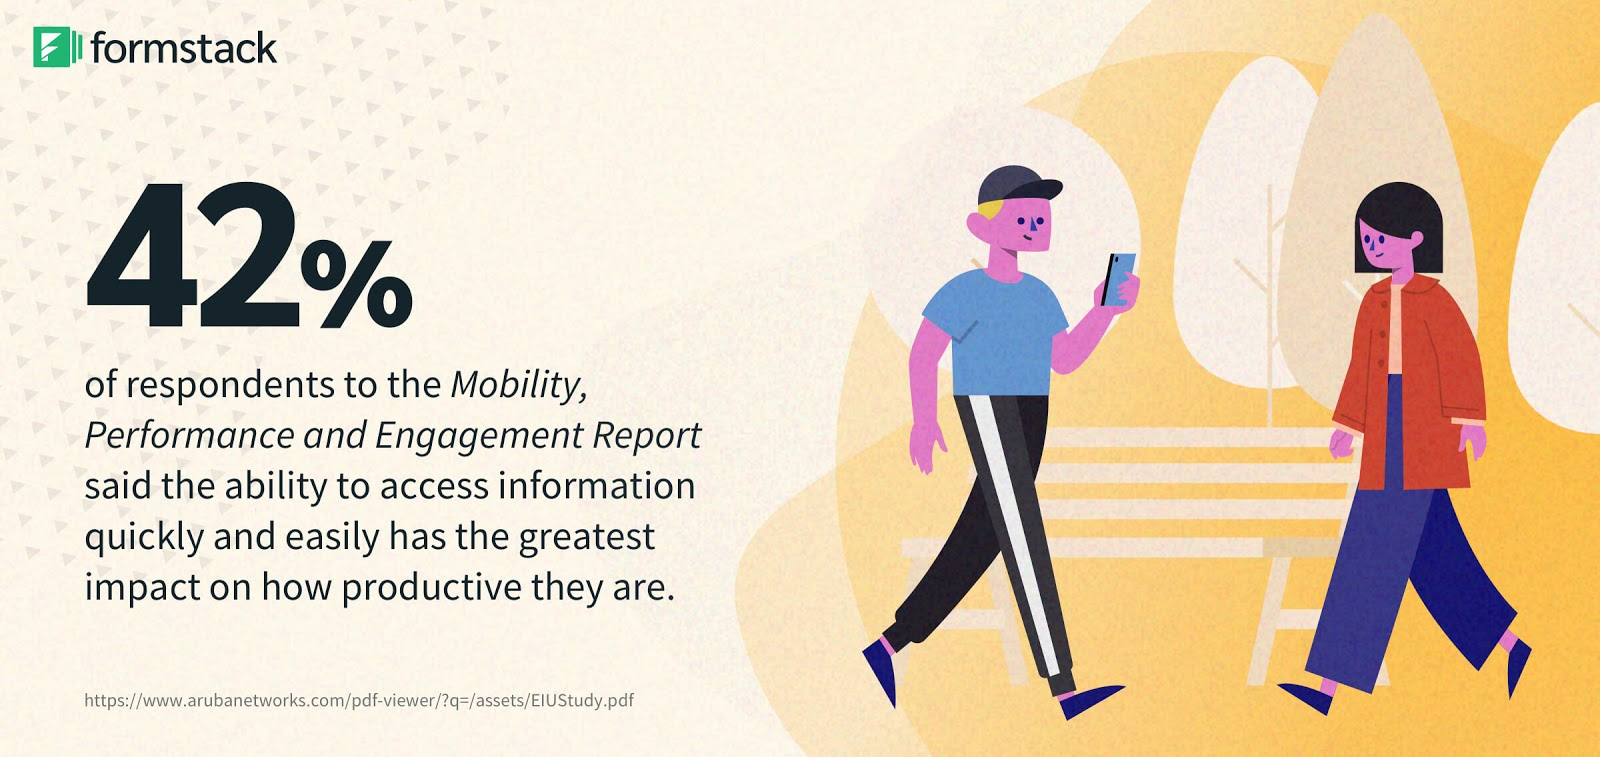 42% say access to information has the greatest impact on productivity